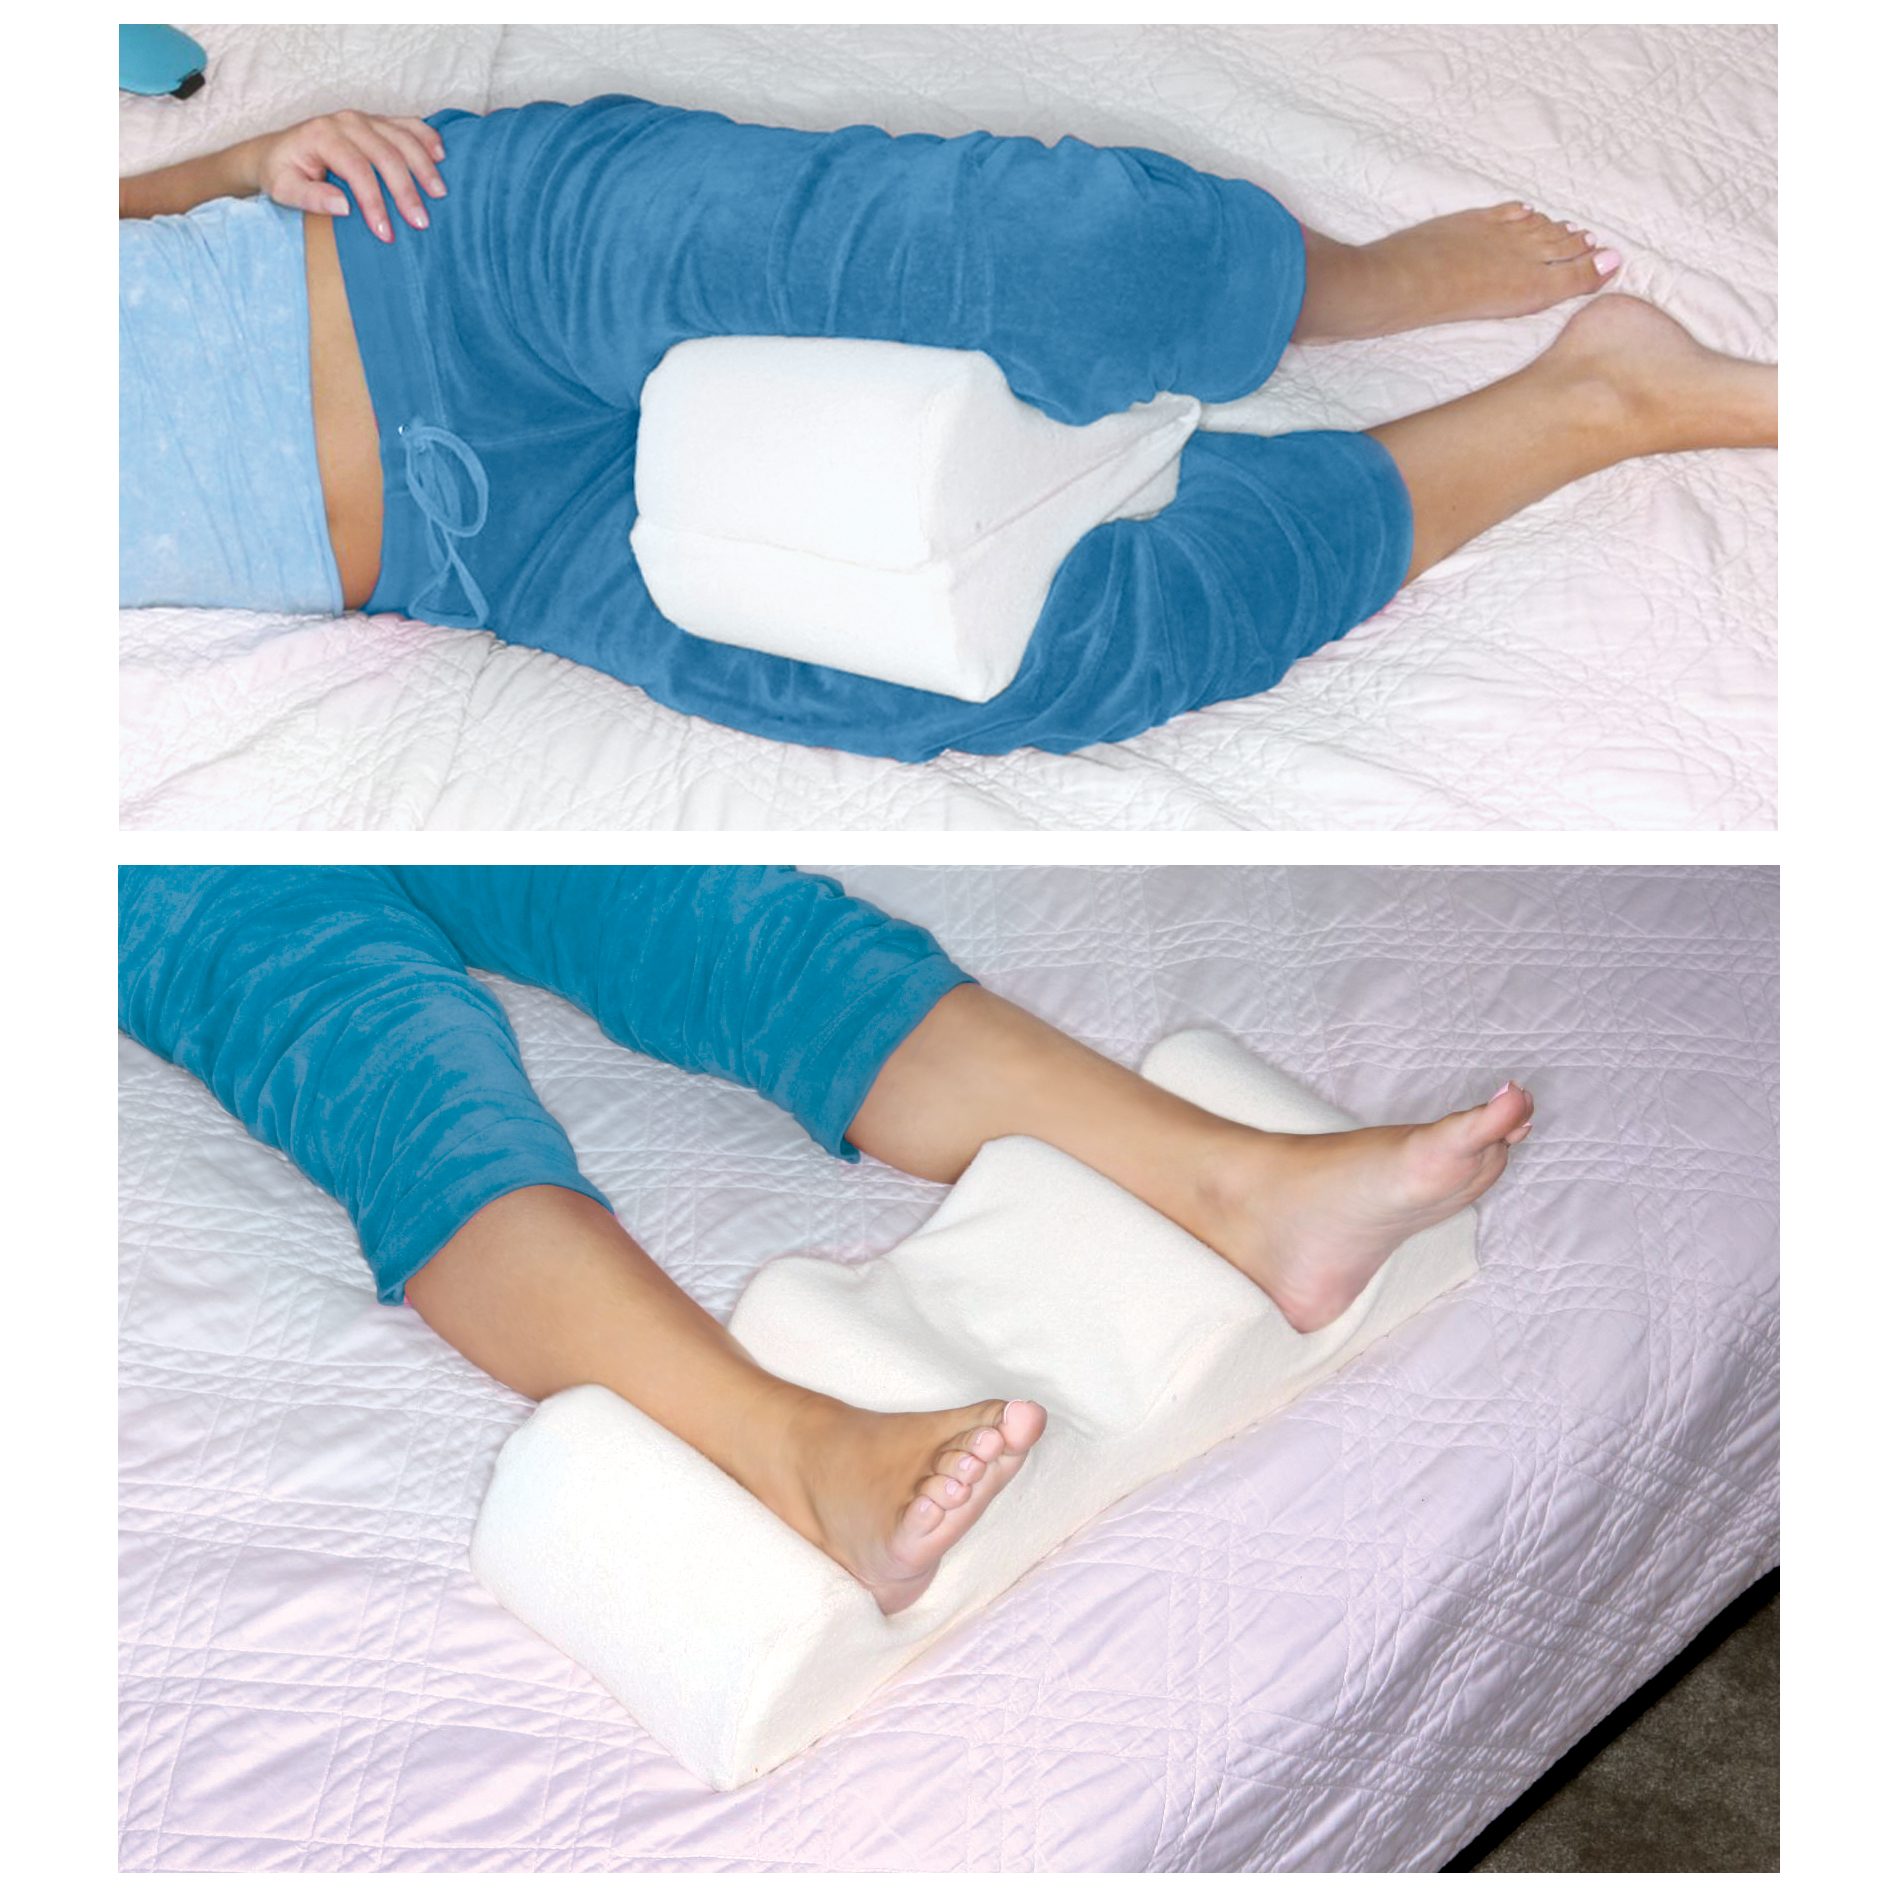 Leg Wedge Pillow Best Memory Foam 2in1 Knee Pillows